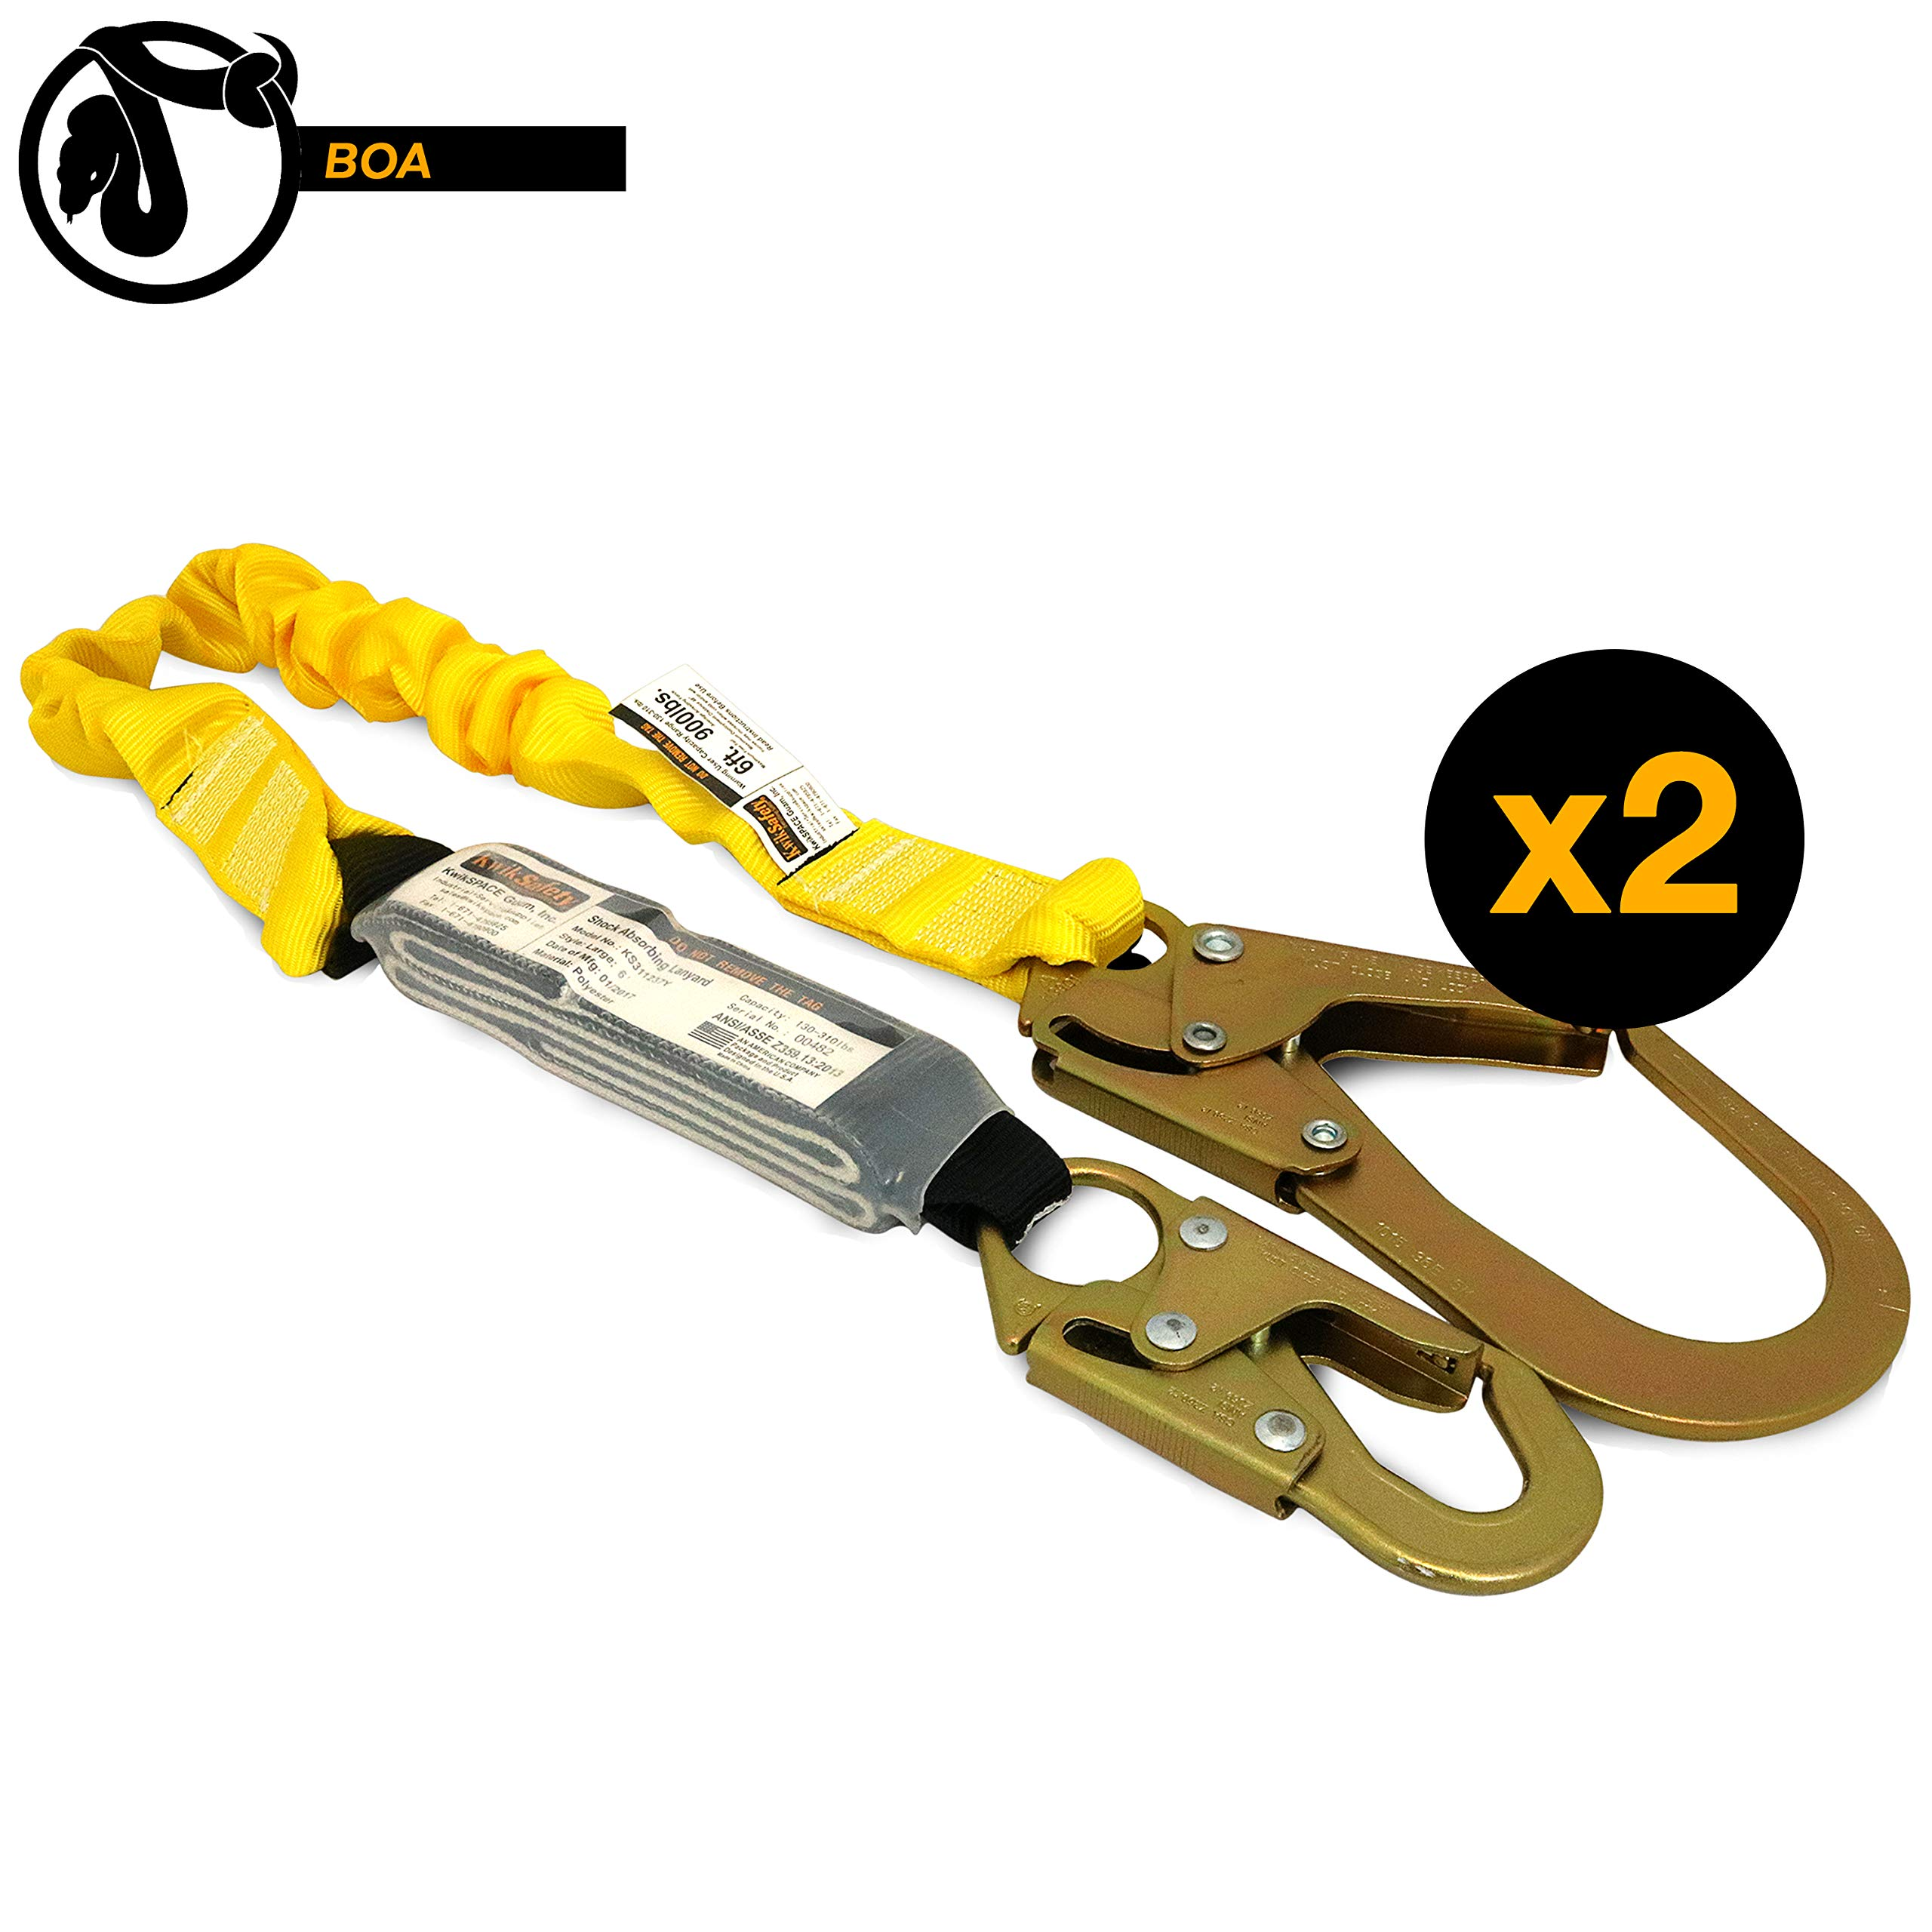 KwikSafety (Charlotte, NC) BOA (2 PACK) Single Leg 6ft Tubular Stretch Safety Lanyard | OSHA ANSI Fall Protection | EXTERNAL Shock Absorber | Construction Arborist Roofing | Snap Rebar Hook Connectors by KwikSafety (Image #1)